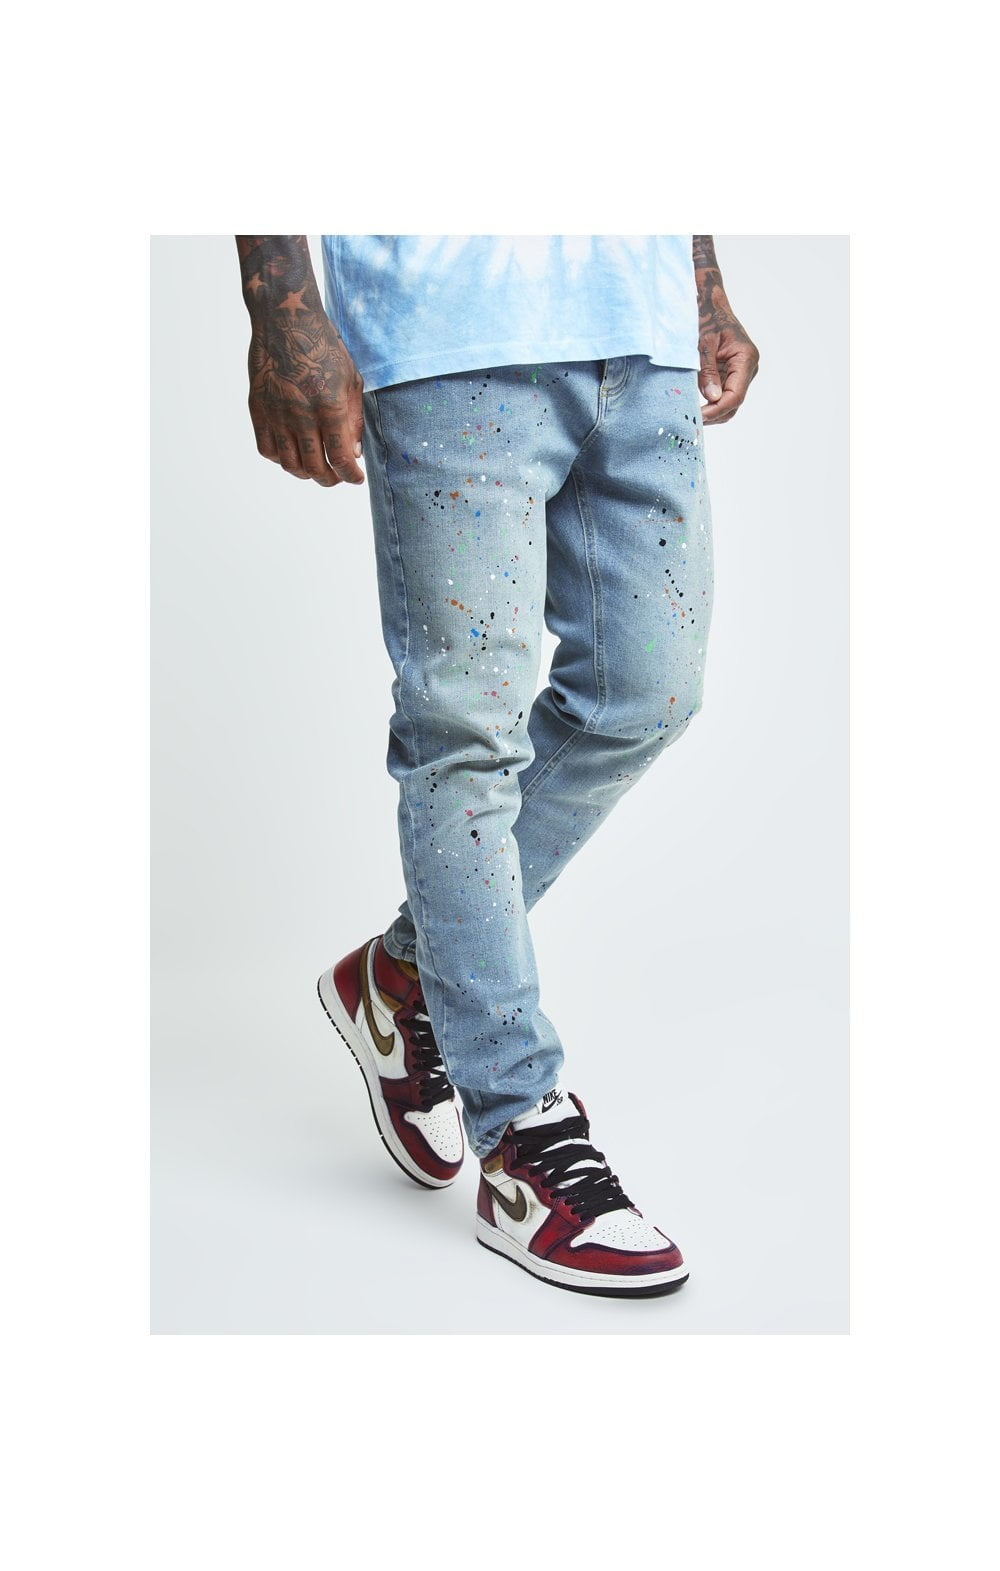 Load image into Gallery viewer, SikSilk X Steve Aoki Loose Fit Riot Denims - Light Wash